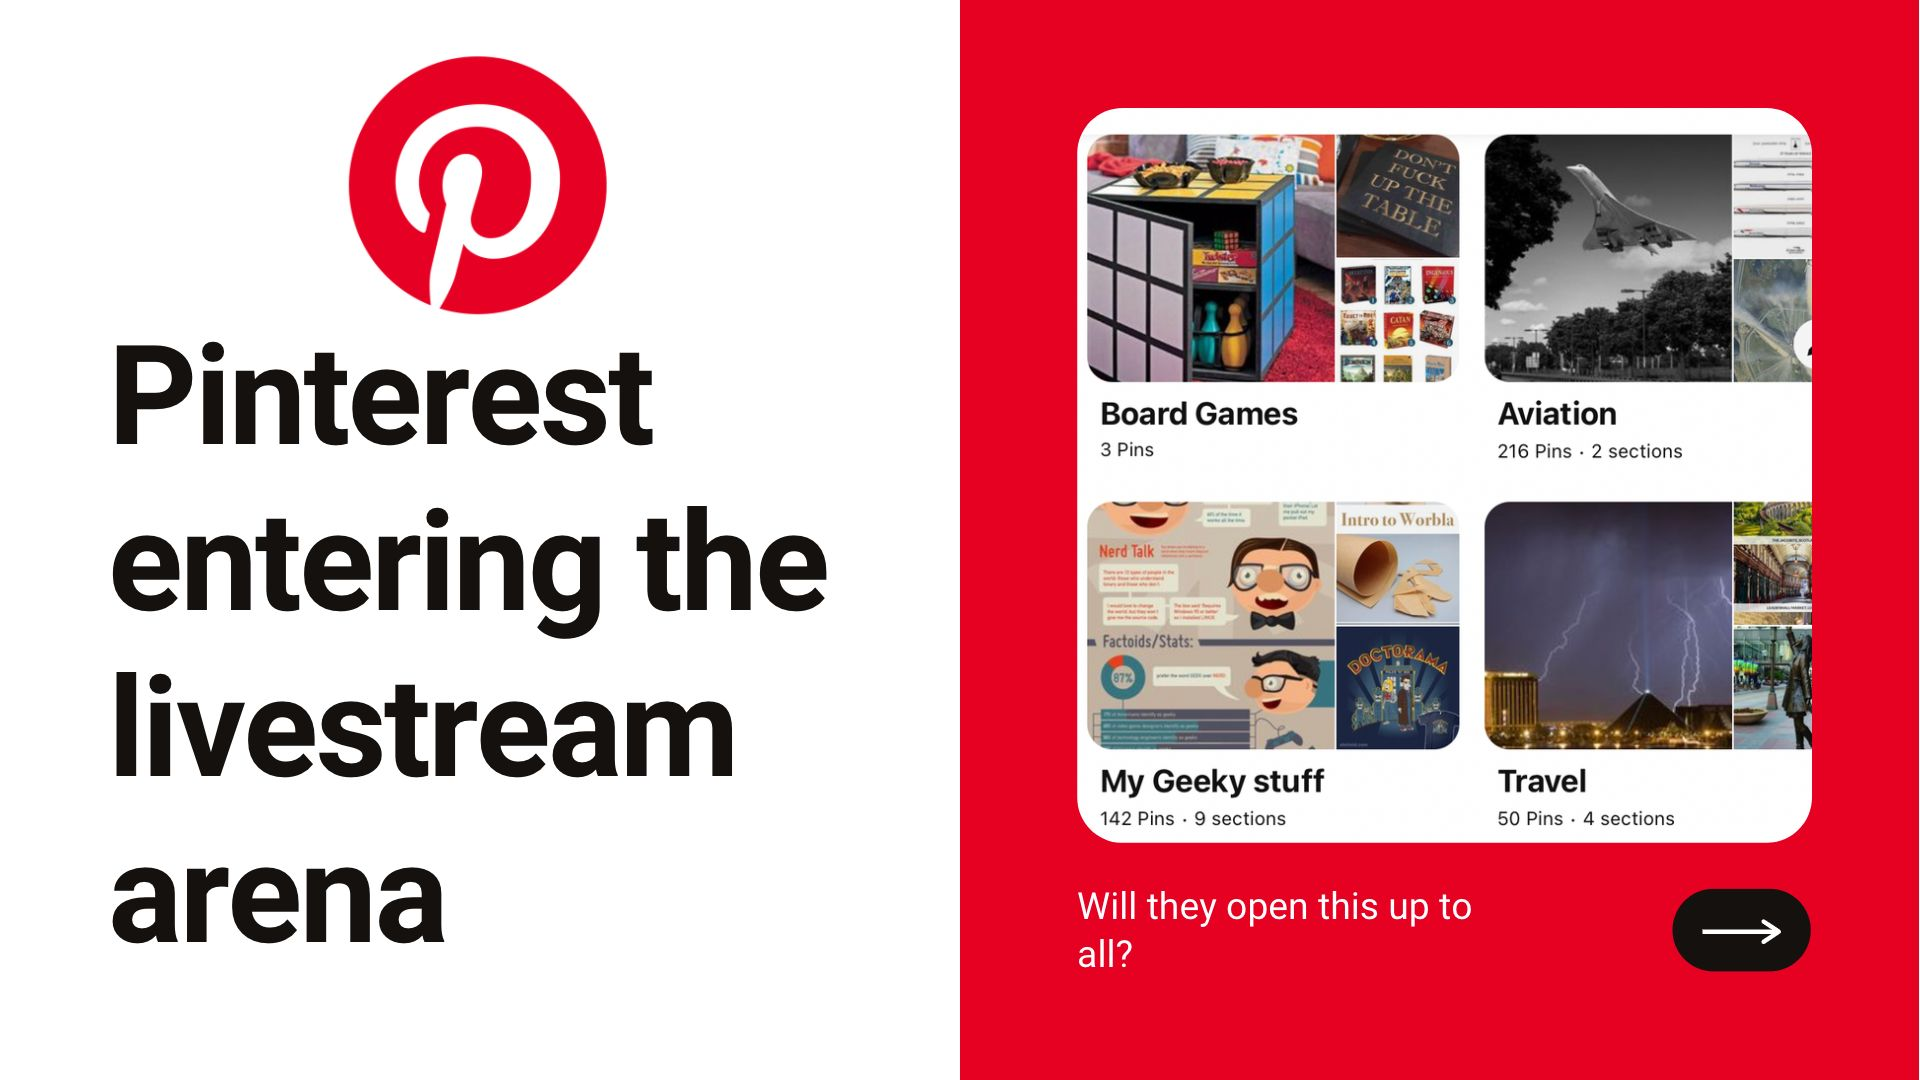 http://marketingelementsblog.com/2021/05/is-pinterest-adding-livestreams/